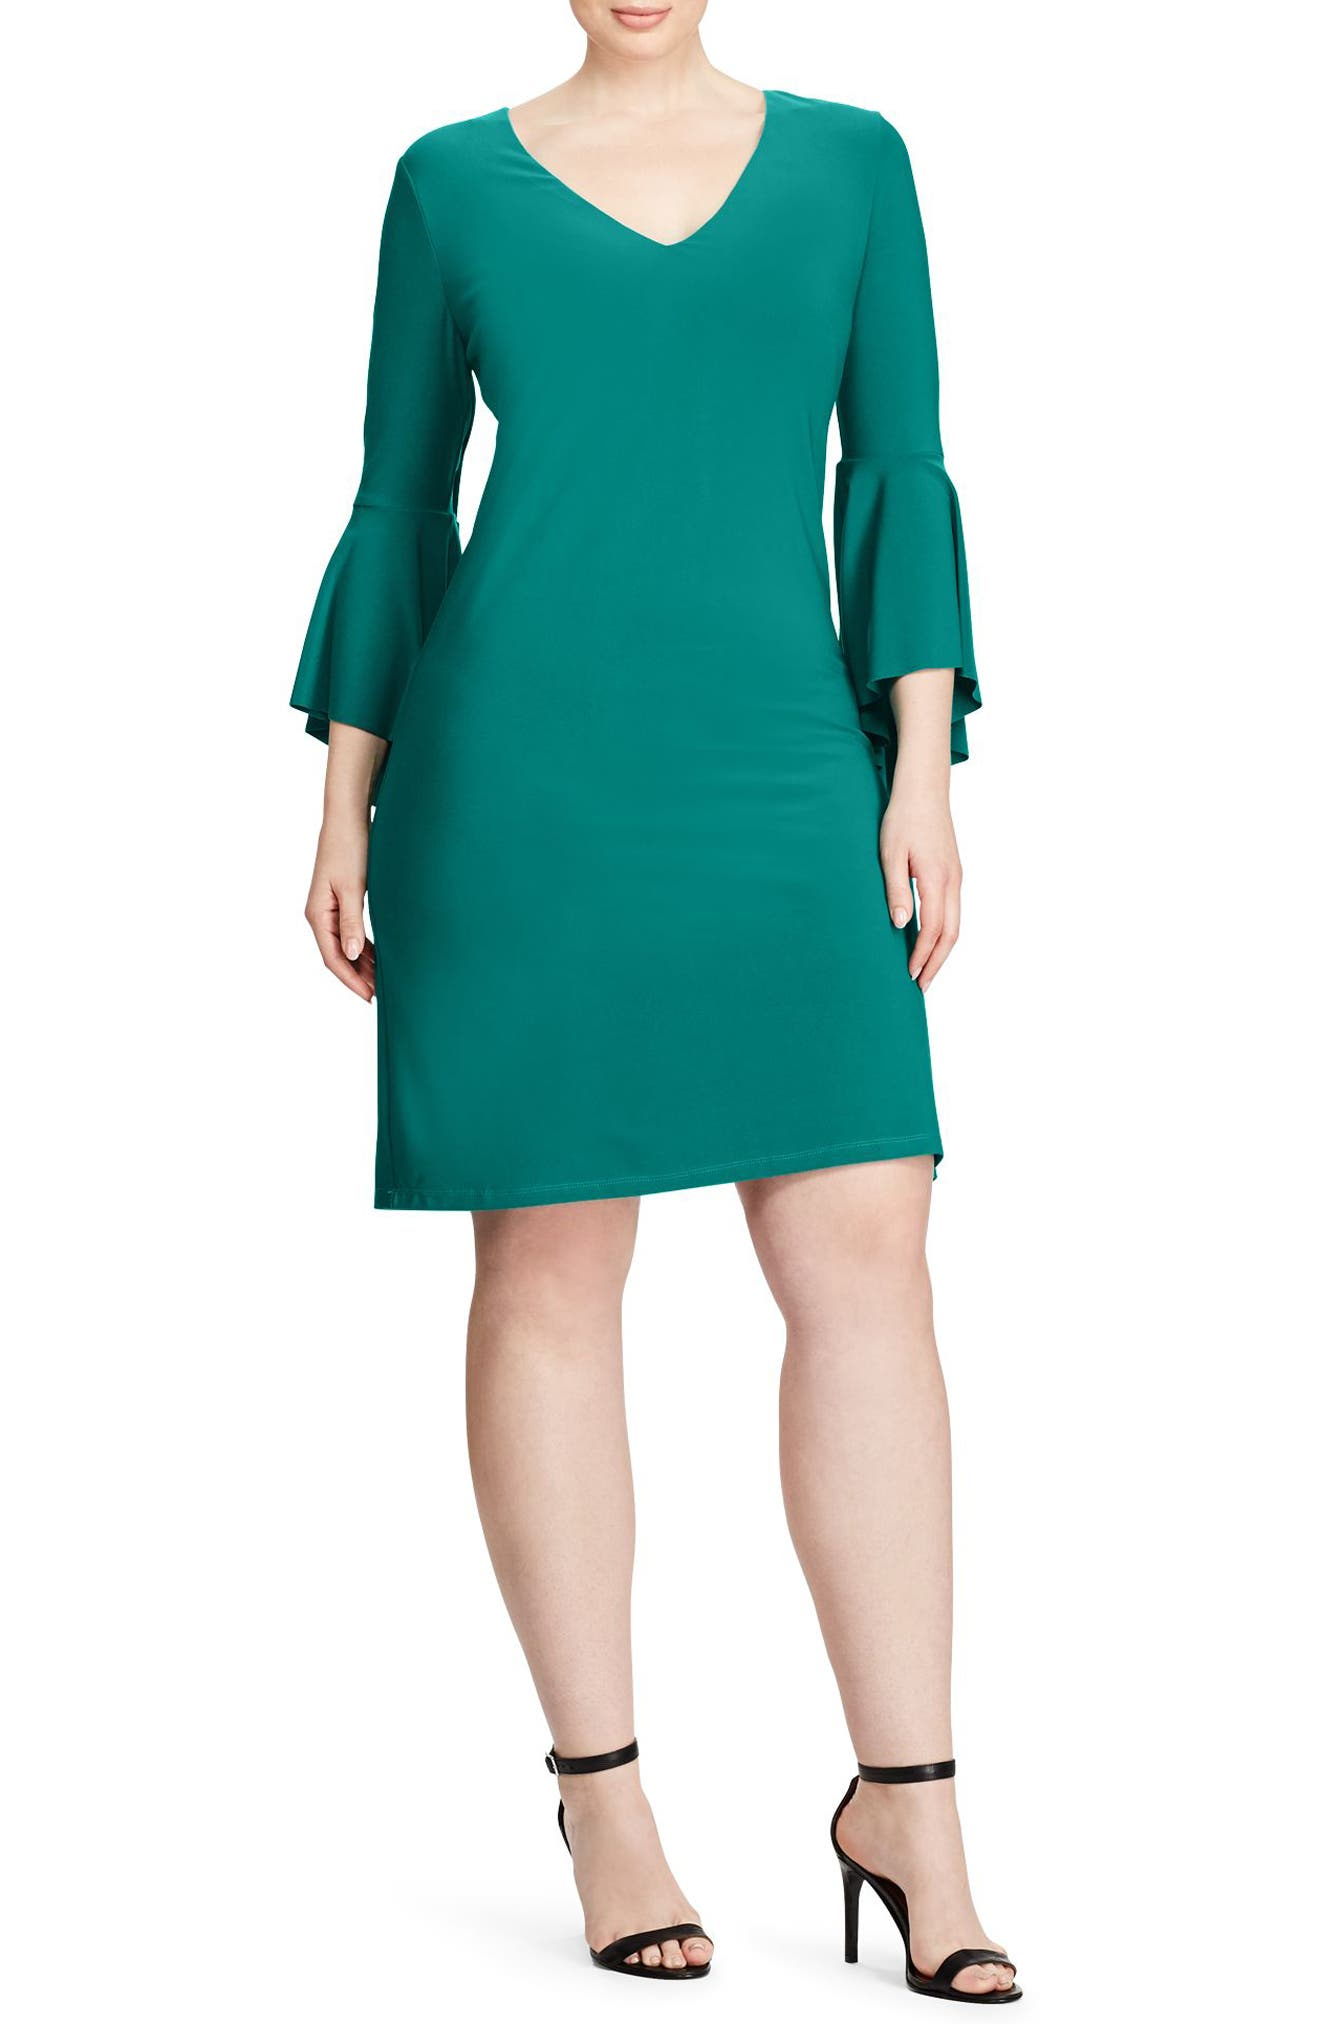 Alternate Image 1 Selected - Lauren Ralph Lauren Flounce Sleeve Jersey Dress (Plus Size)